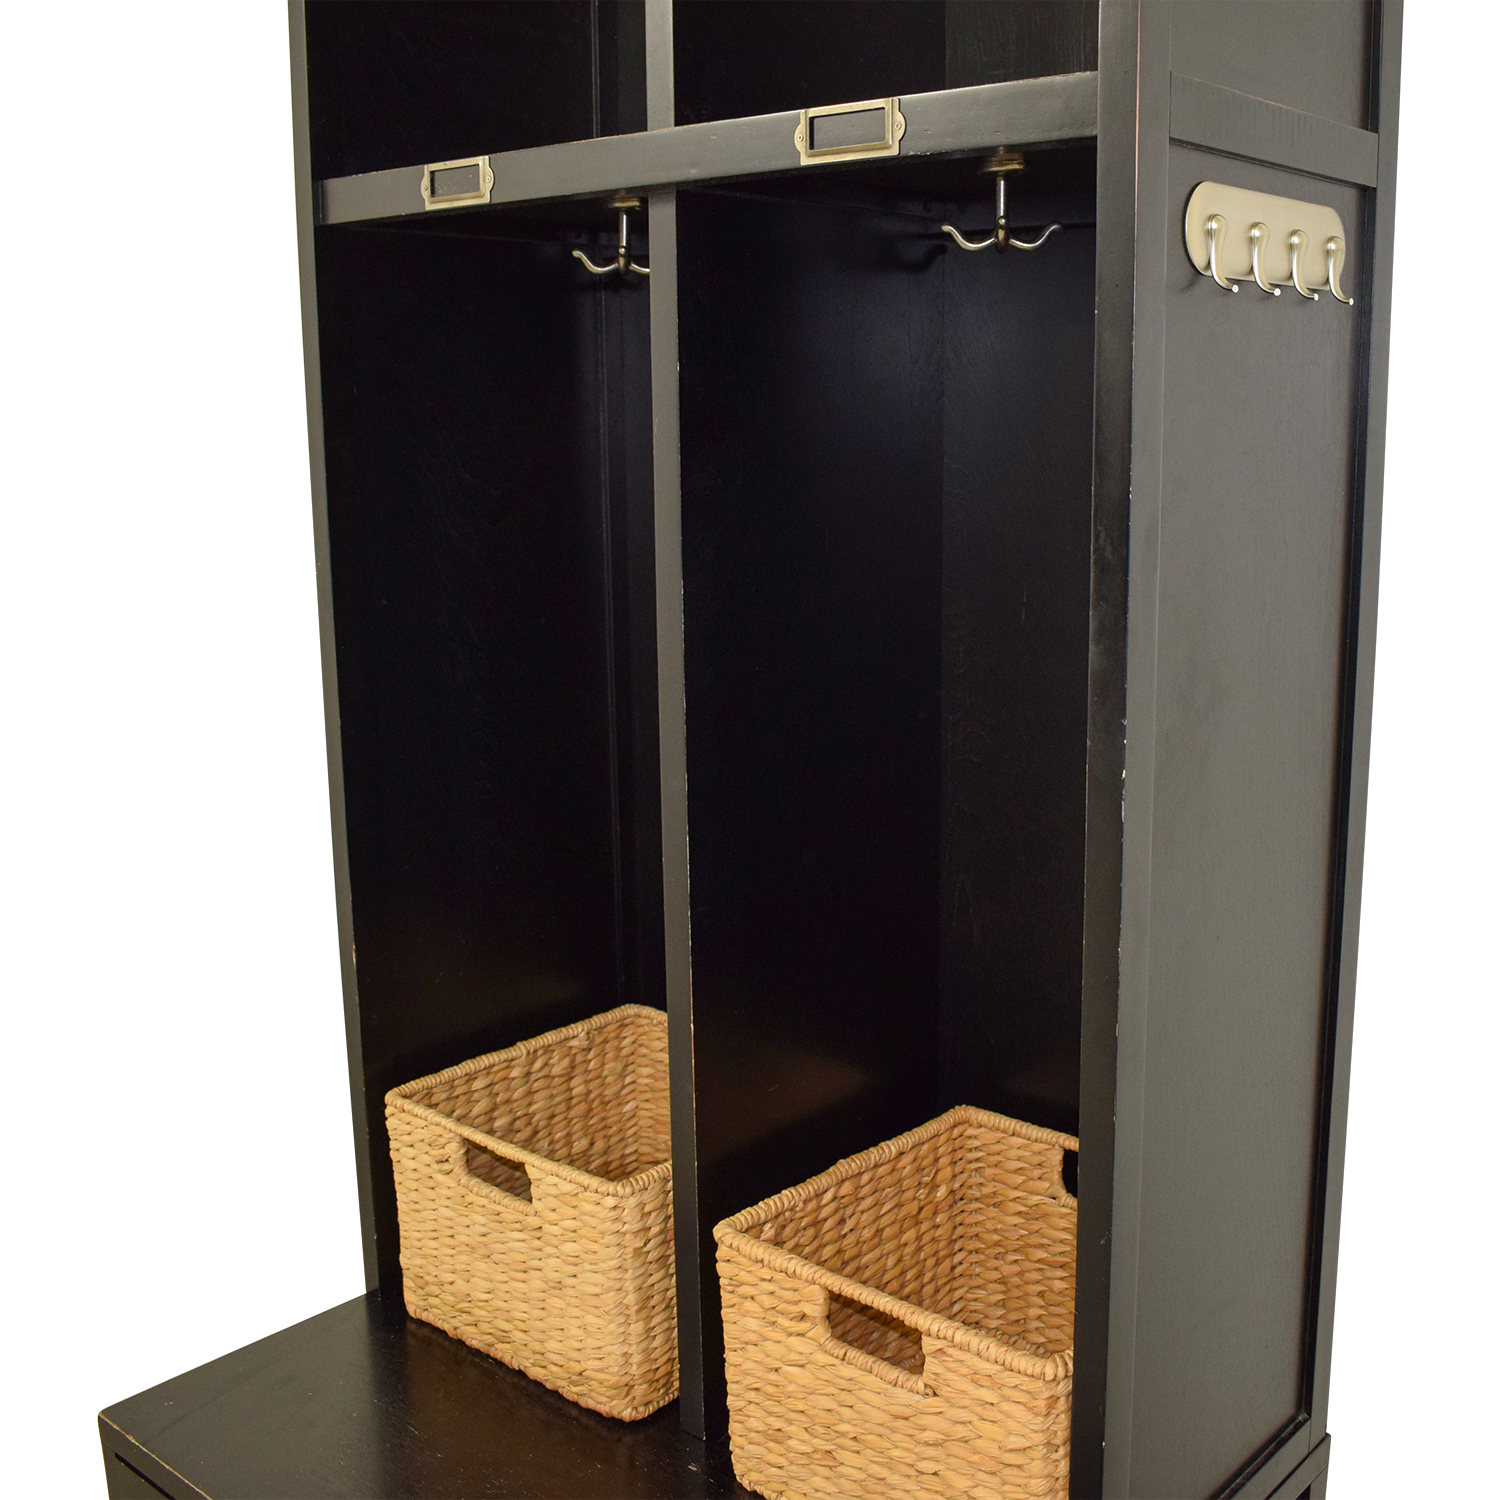 Pottery Barn Pottery Barn Single Drawer Mud Room Lockers with Wicker Baskets second hand